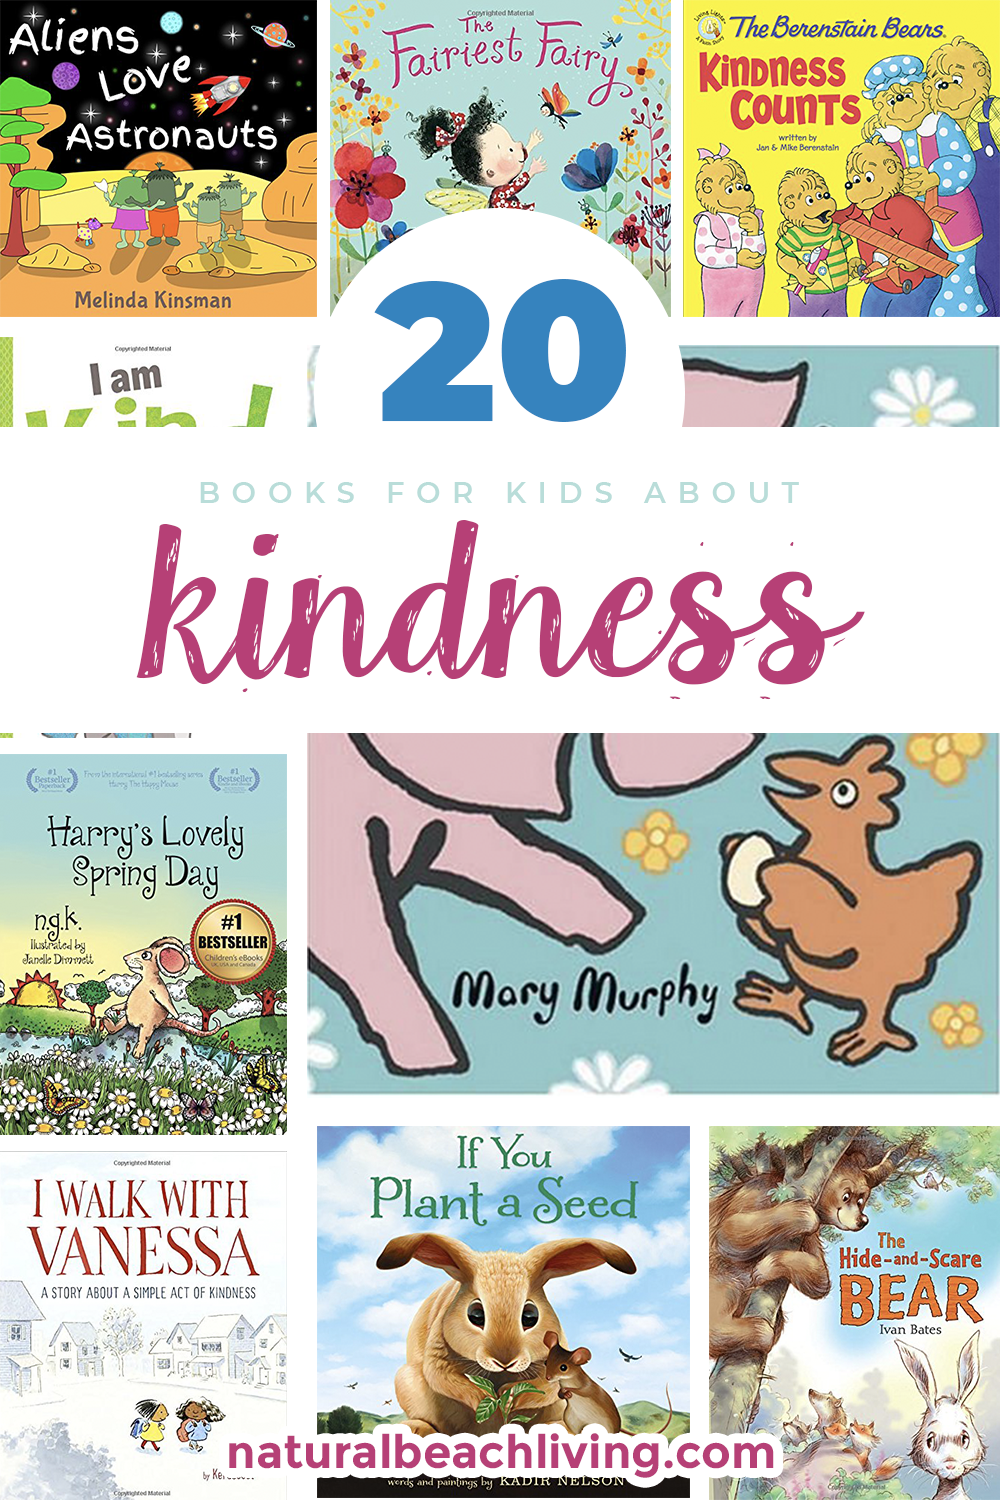 Dessin Zelda furthermore Alphabet Picture Word Cards Square likewise Ocean Slime Pin T besides Books Kids Kindness furthermore Summer Bucket List Ideas. on the ultimate life cycle printables